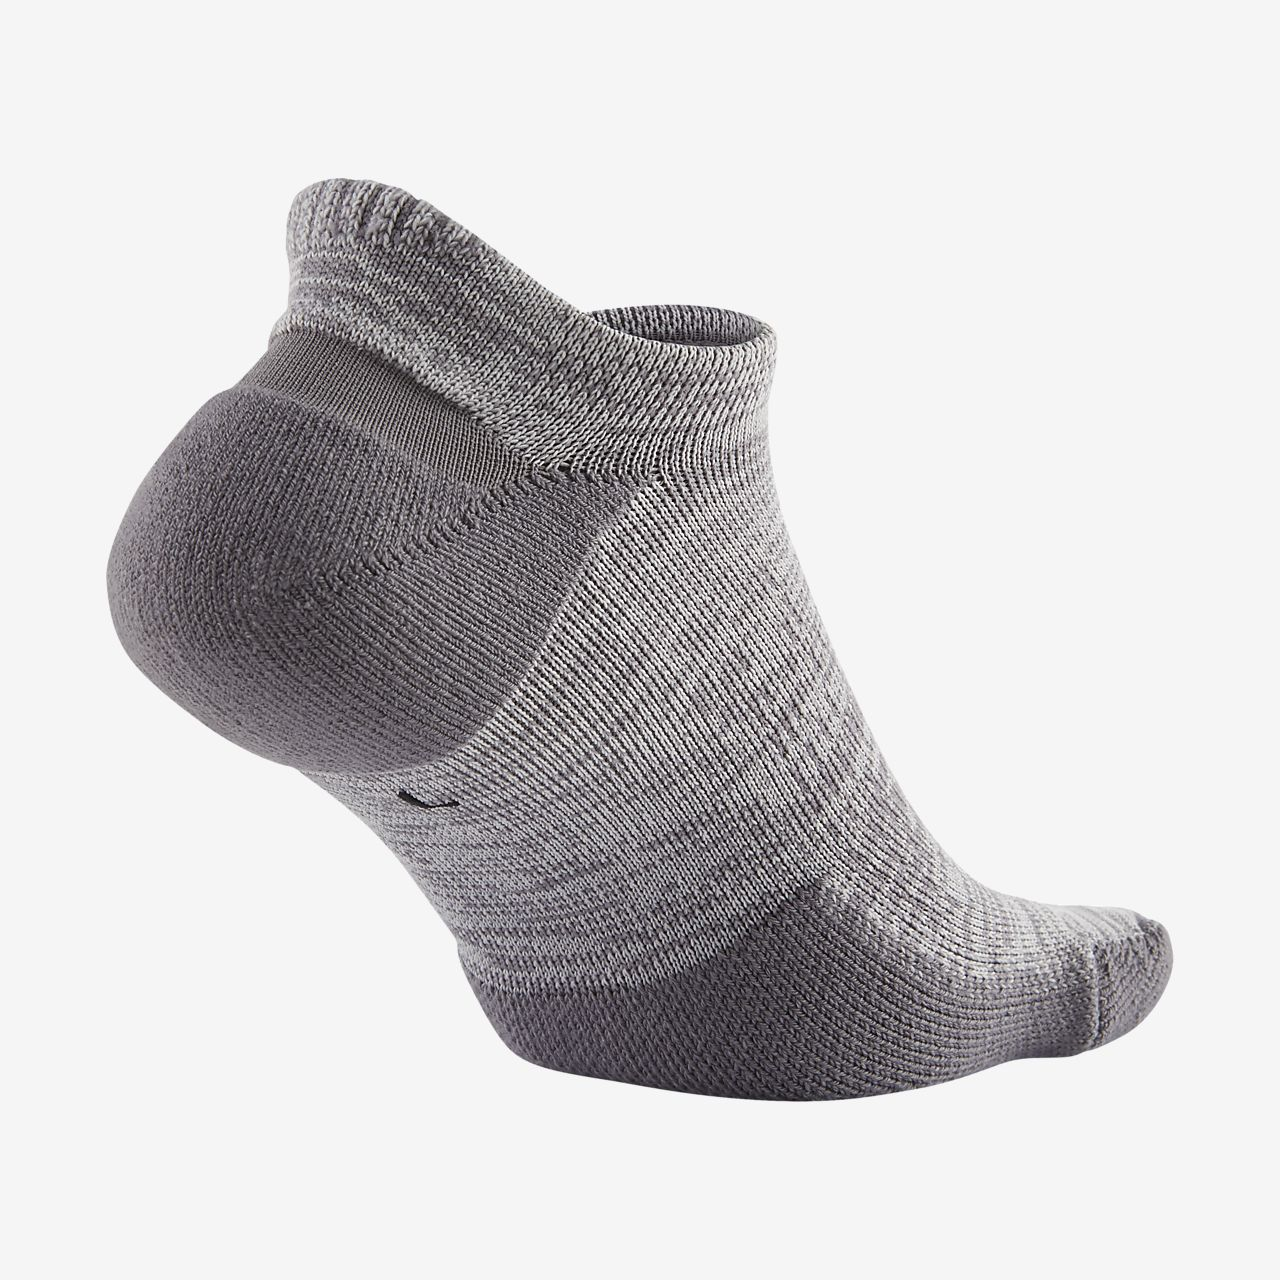 low priced 7b2b9 50726 ... Nike Elite Cushioned No-Show Running Socks